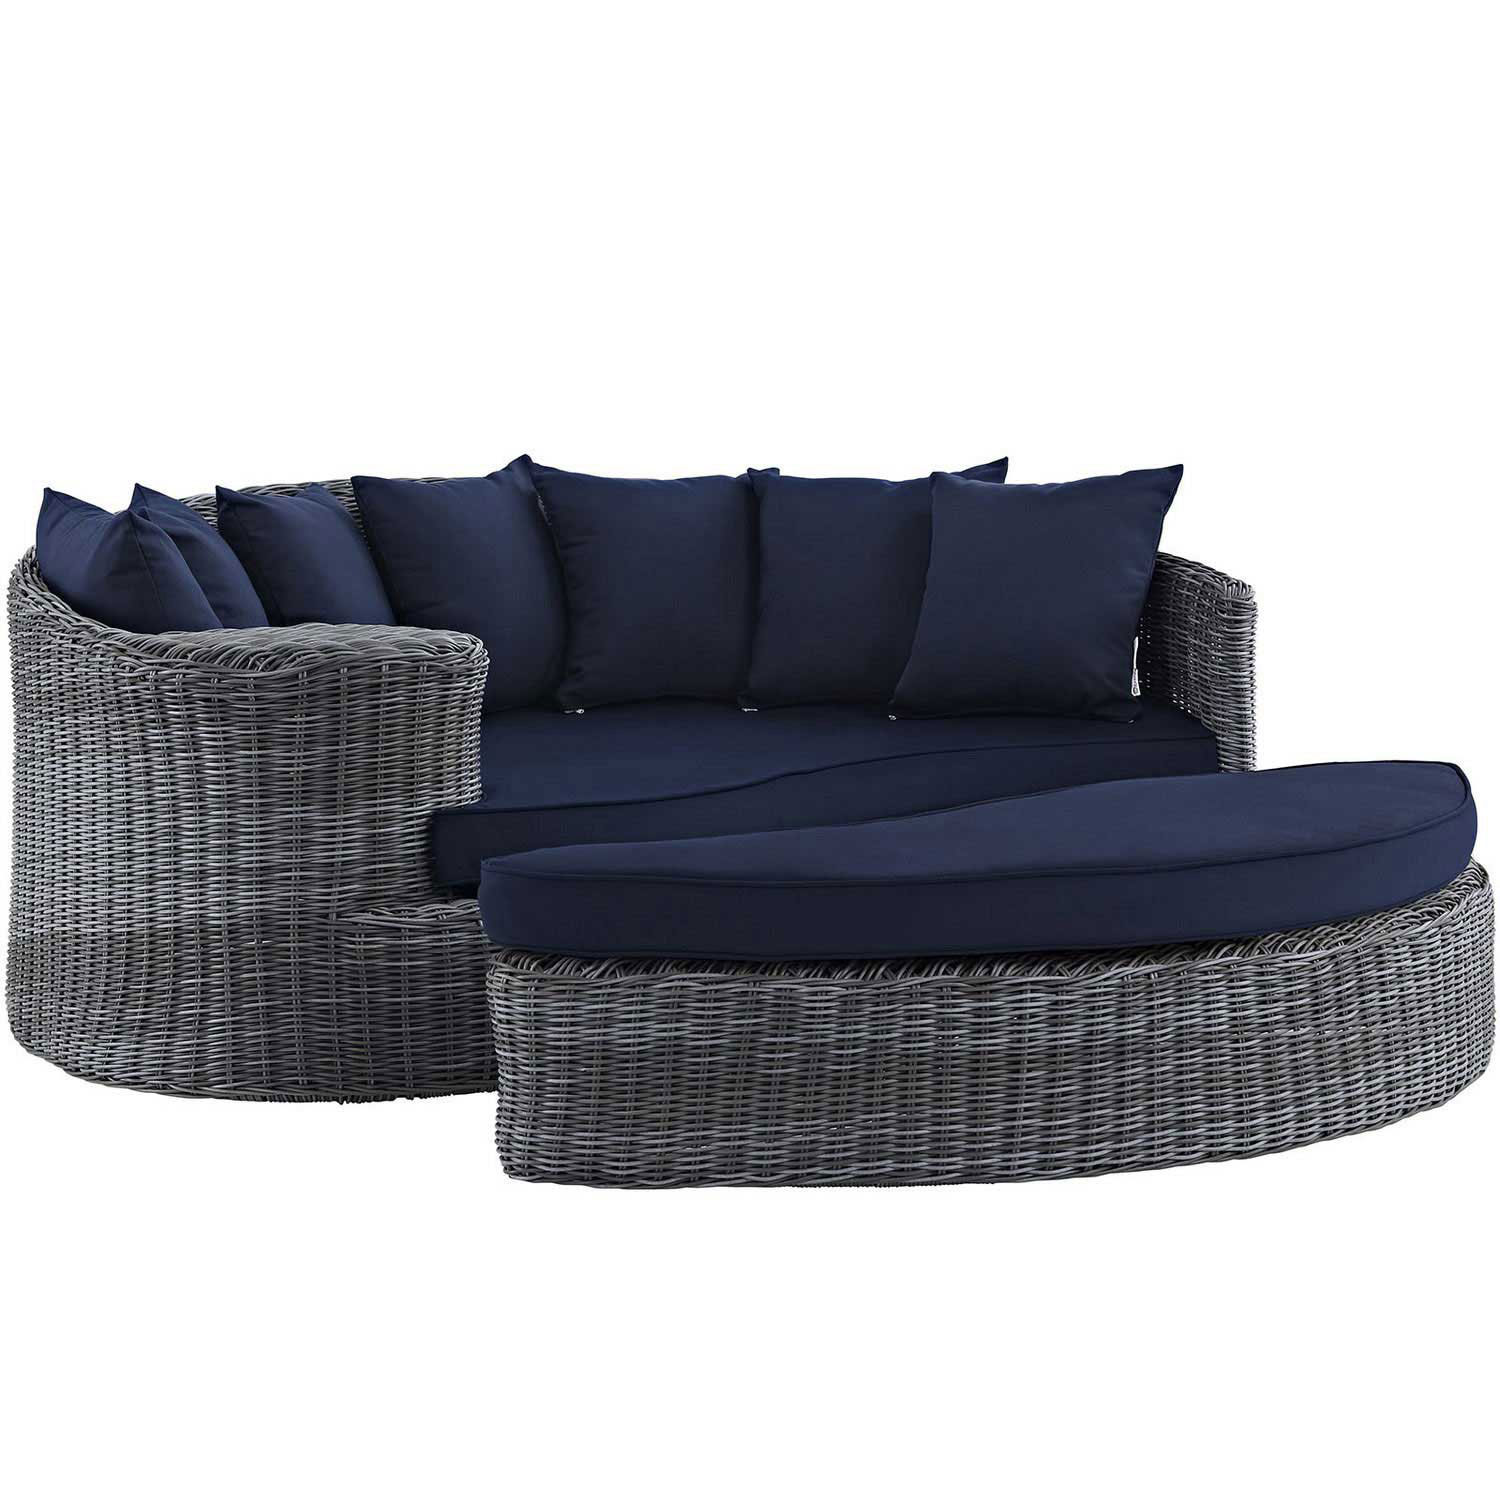 Modway Summon Outdoor Patio Sunbrella Daybed - Canvas Navy